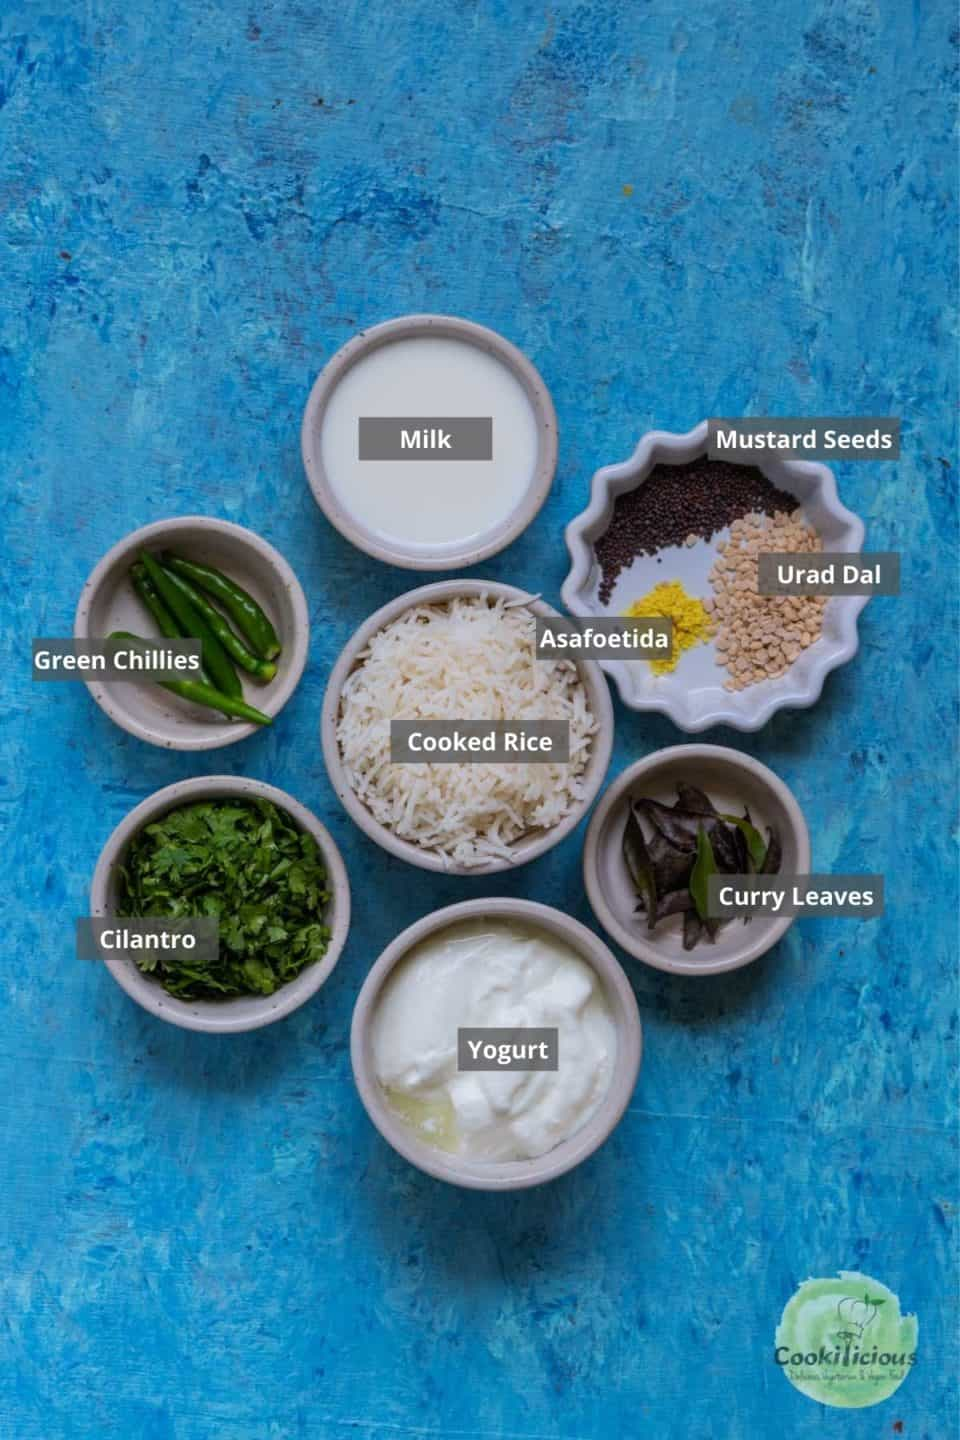 all the ingredients needed to make curd rice placed on a table with labels on them